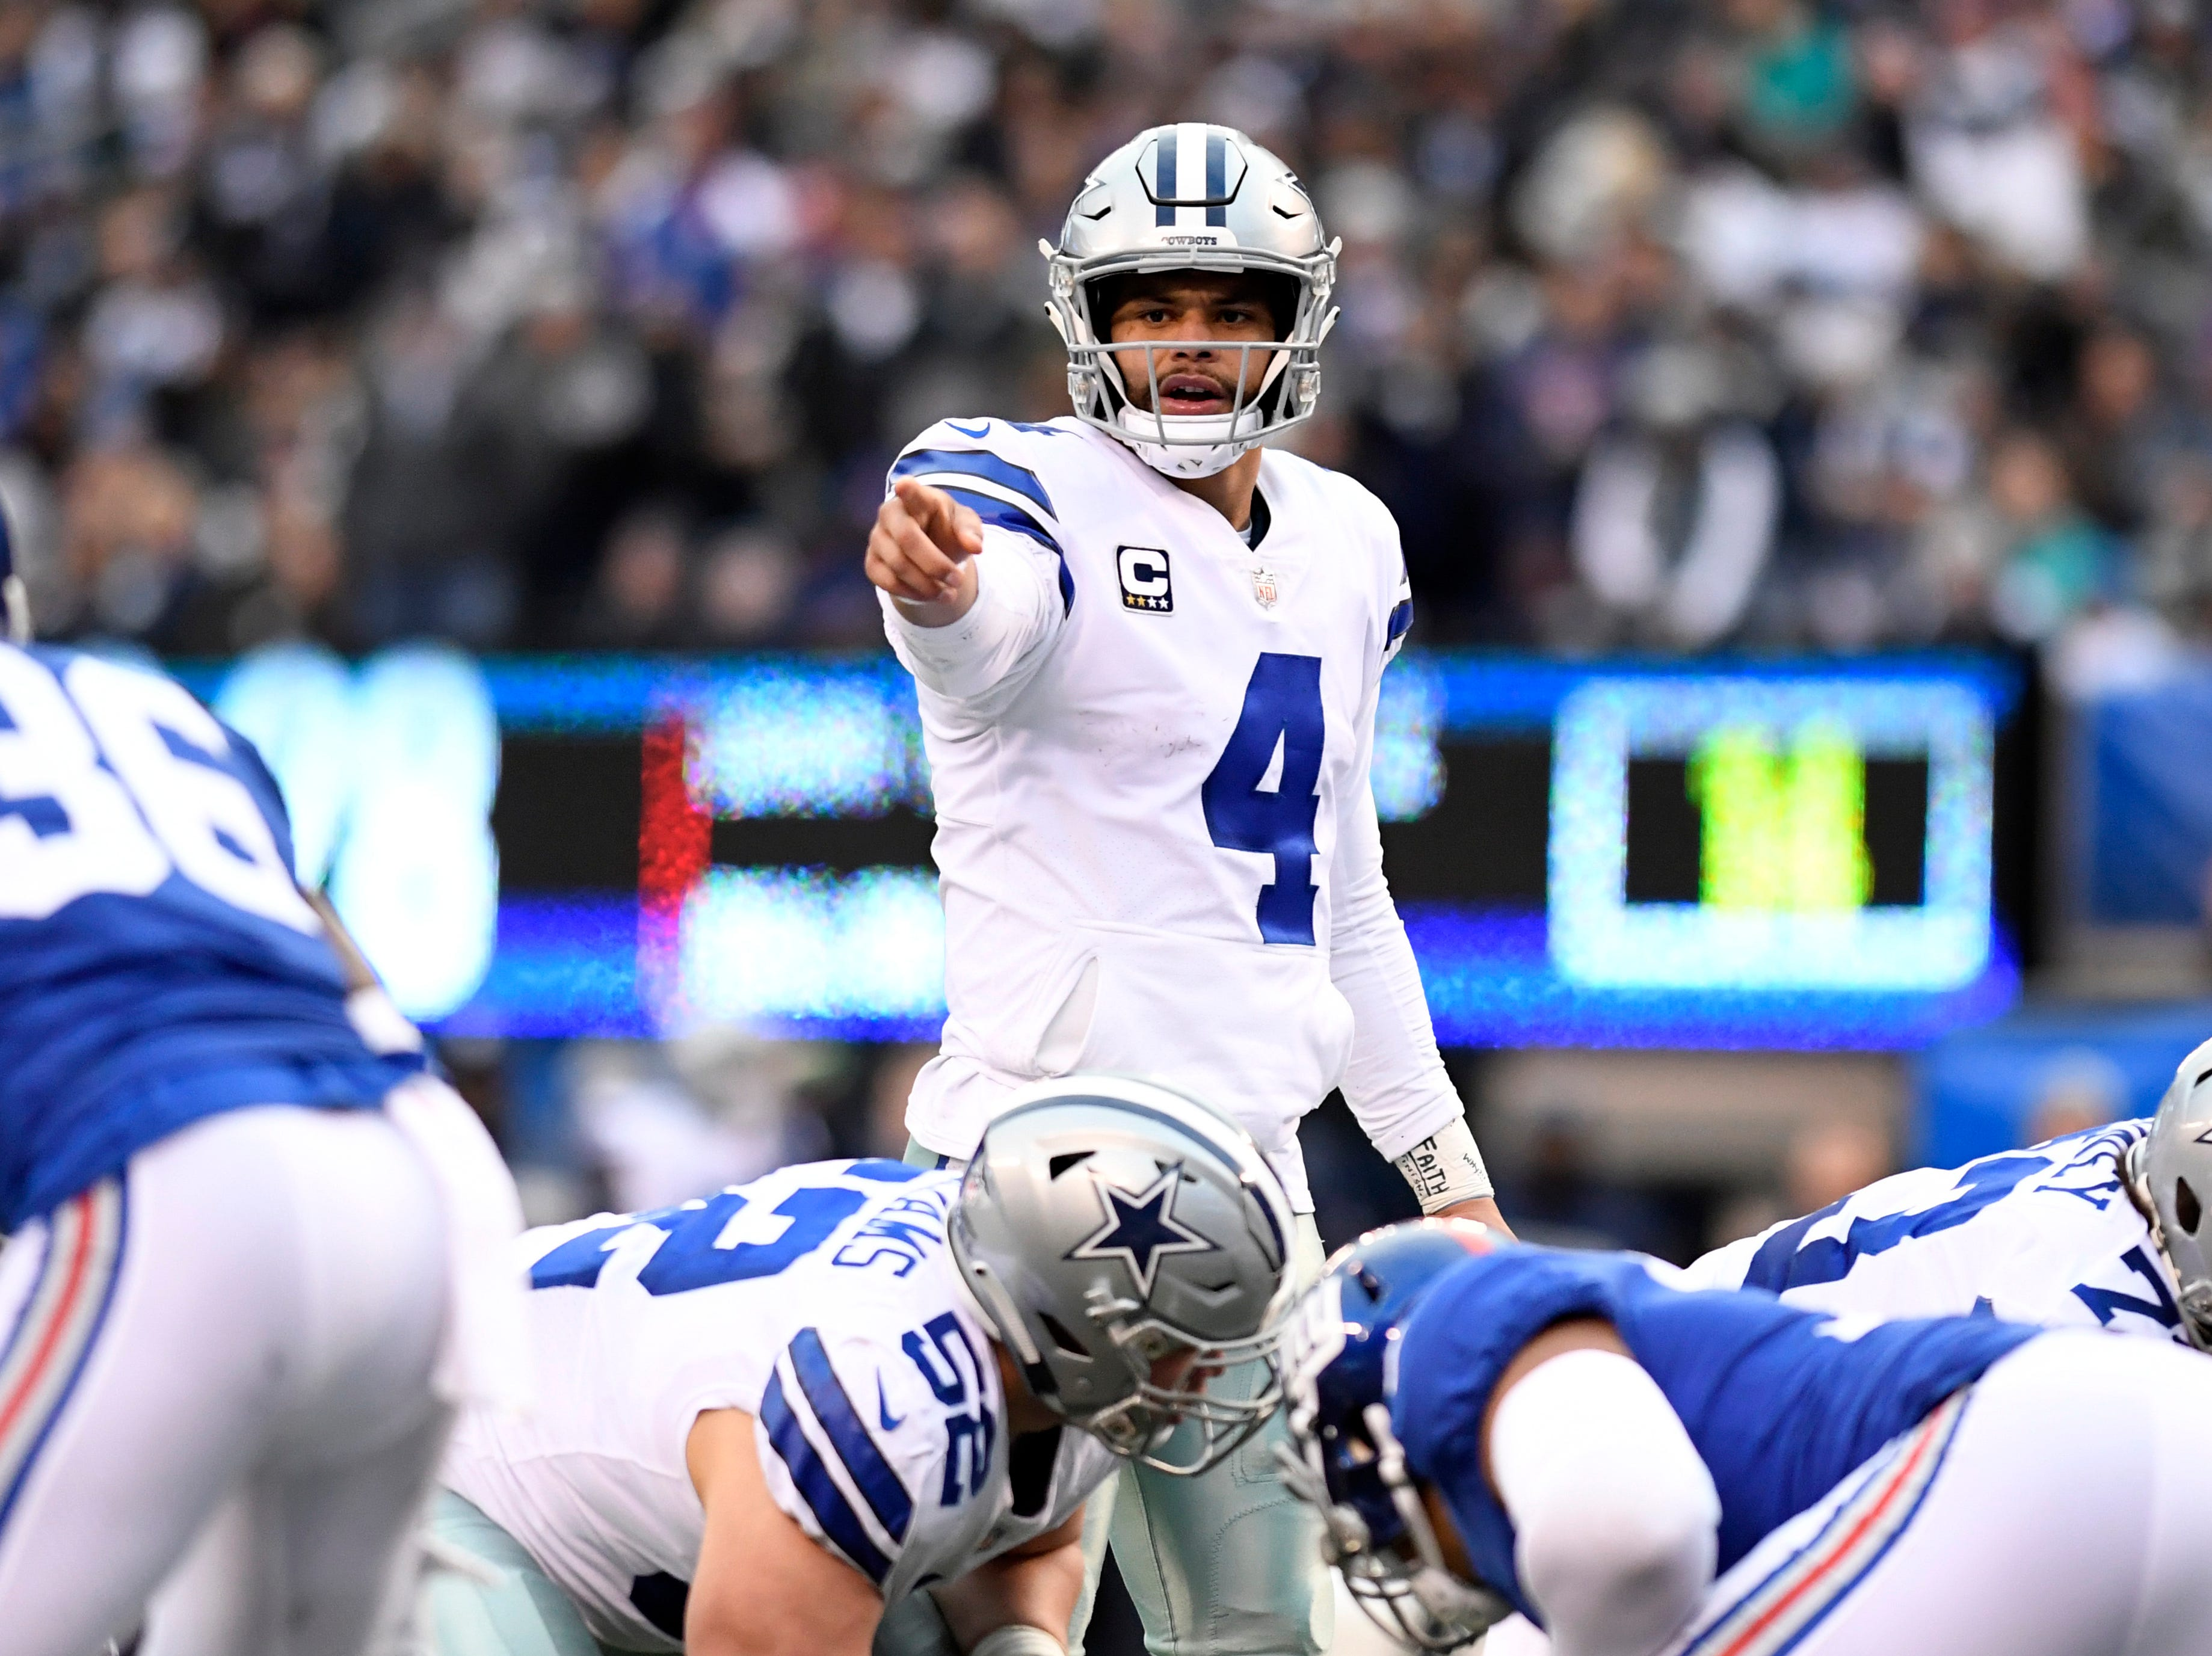 Dallas Cowboys quarterback Dak Prescott (4) at the line of scrimmage in the fourth quarter. The New York Giants lose to the Dallas Cowboys 36-35 on Sunday, Dec. 30, 2018, in East Rutherford.